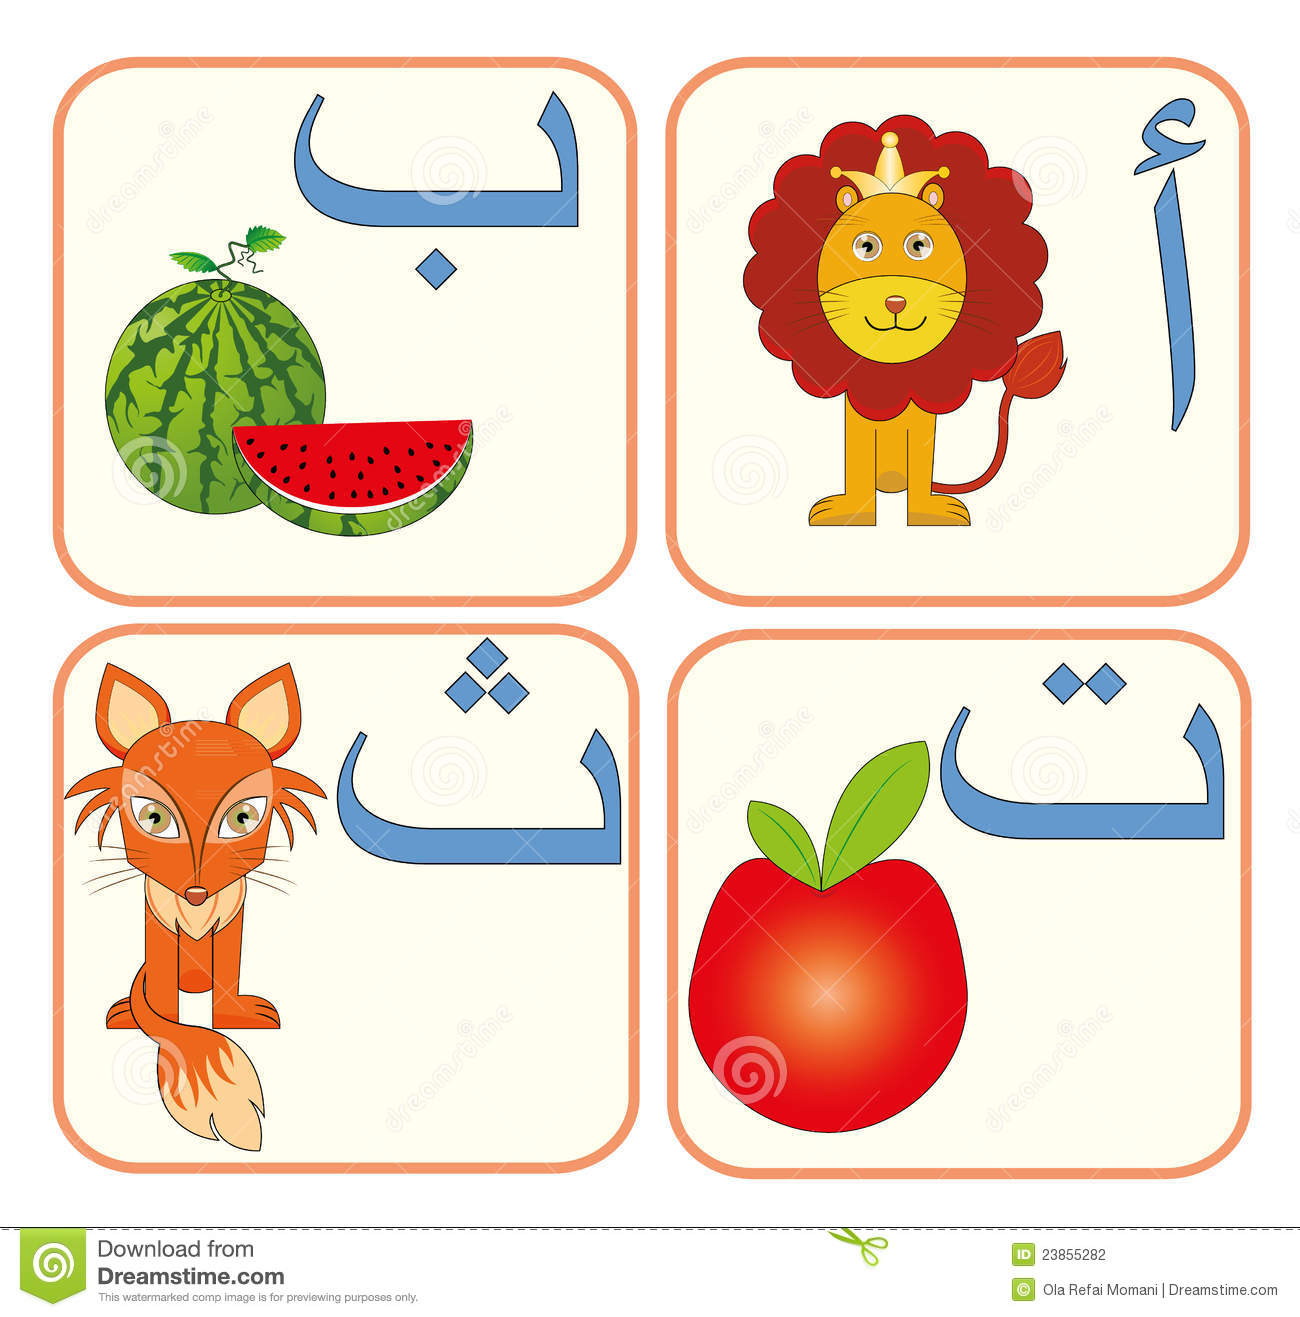 Arabic alphabet for kids with cute animals and fruit for each letter - Alphabet Animals Arabic Cute Fruit Kids Letter